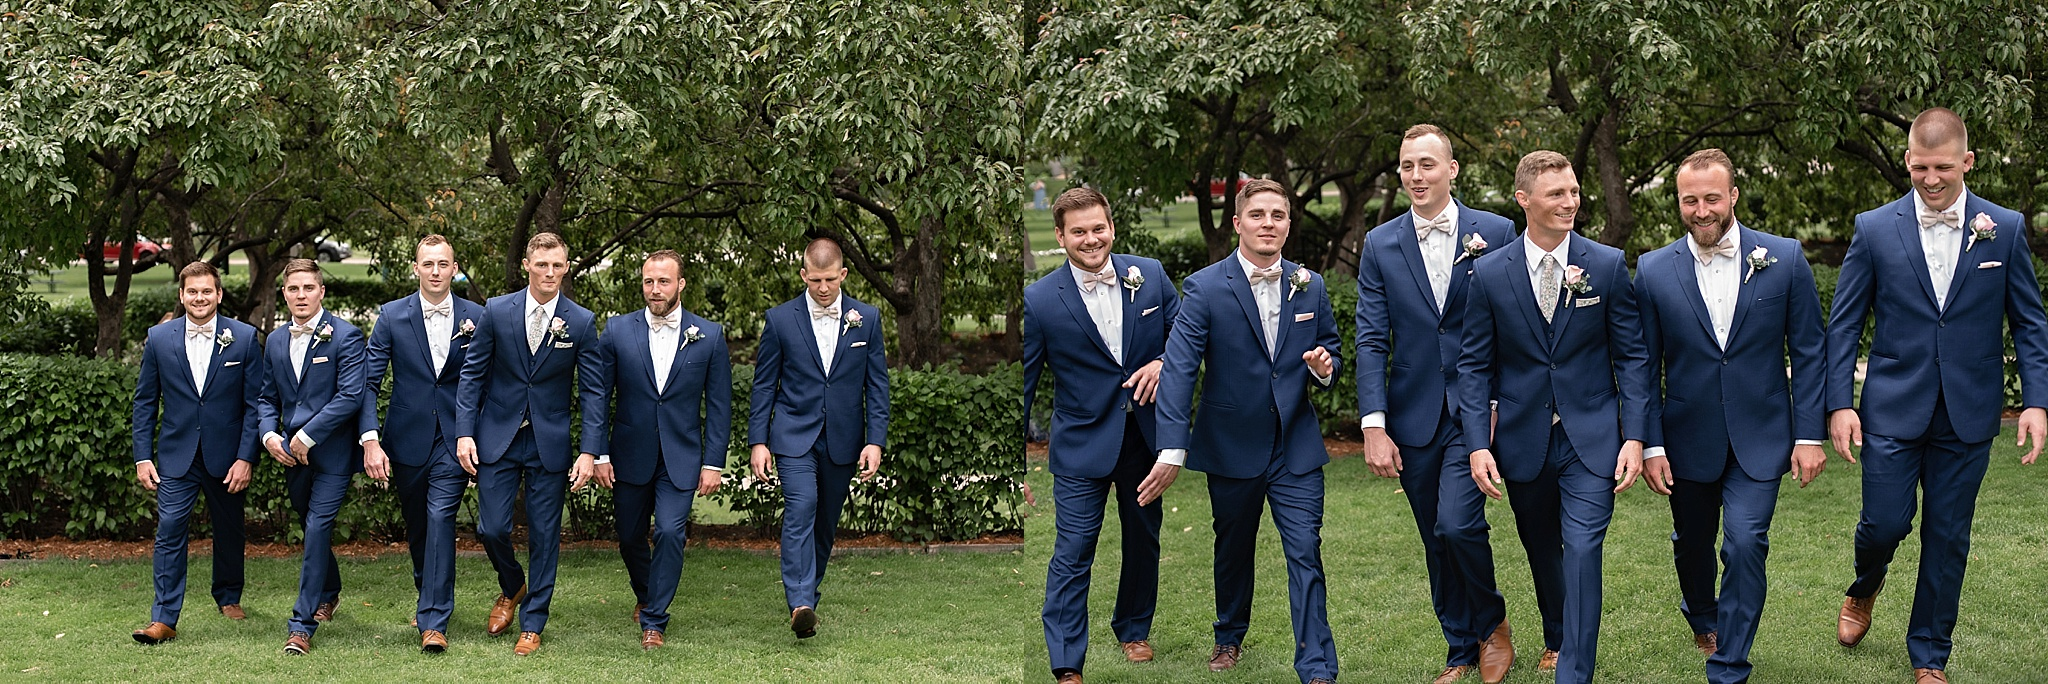 groomsman style navy tux with blush tie